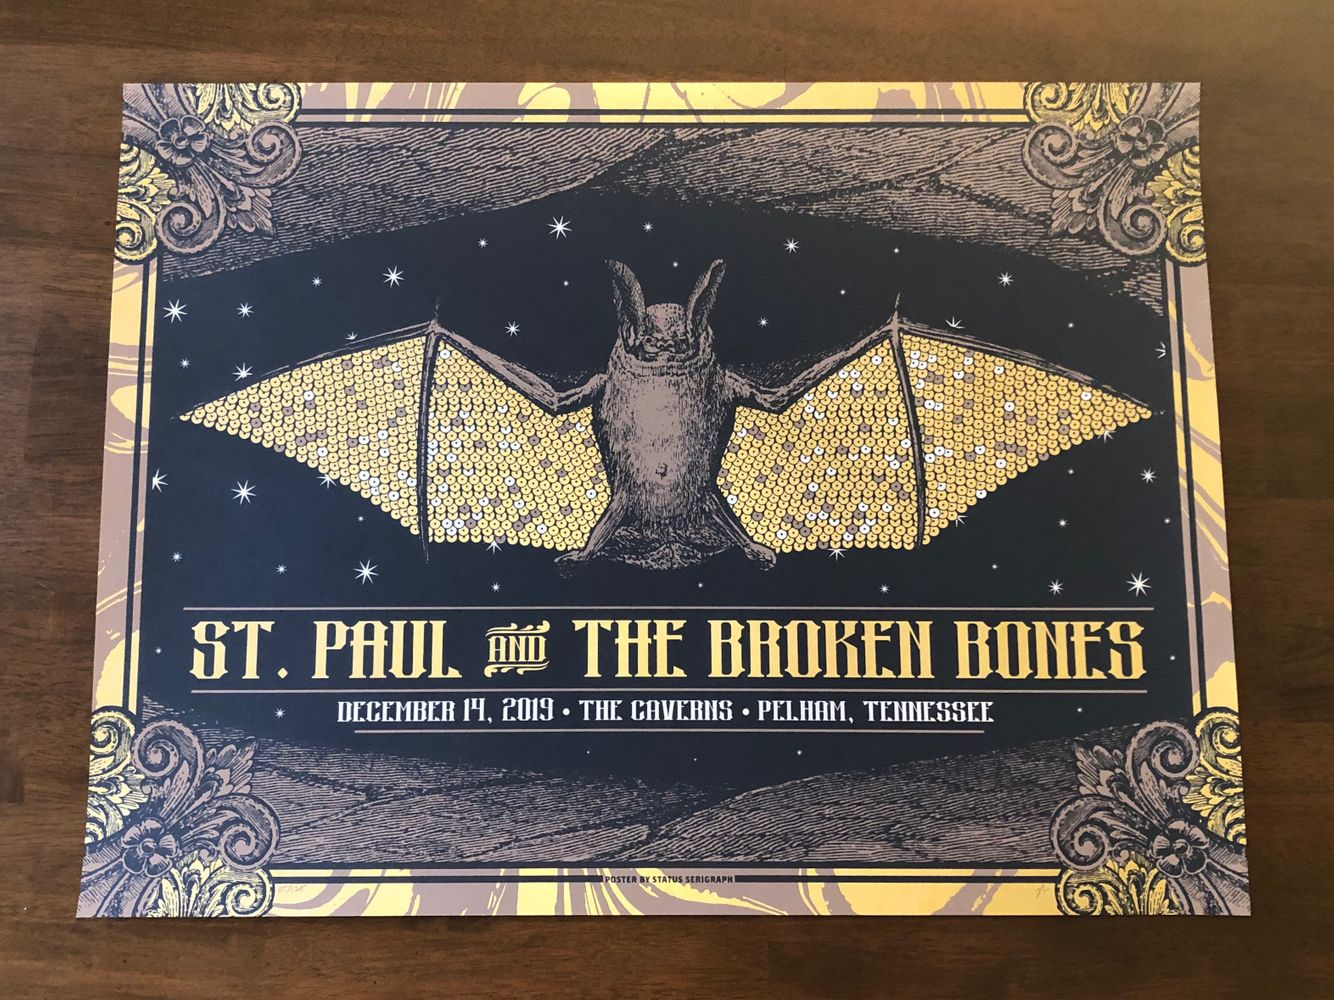 St Paul and The Broken Bones poster photo.jpg